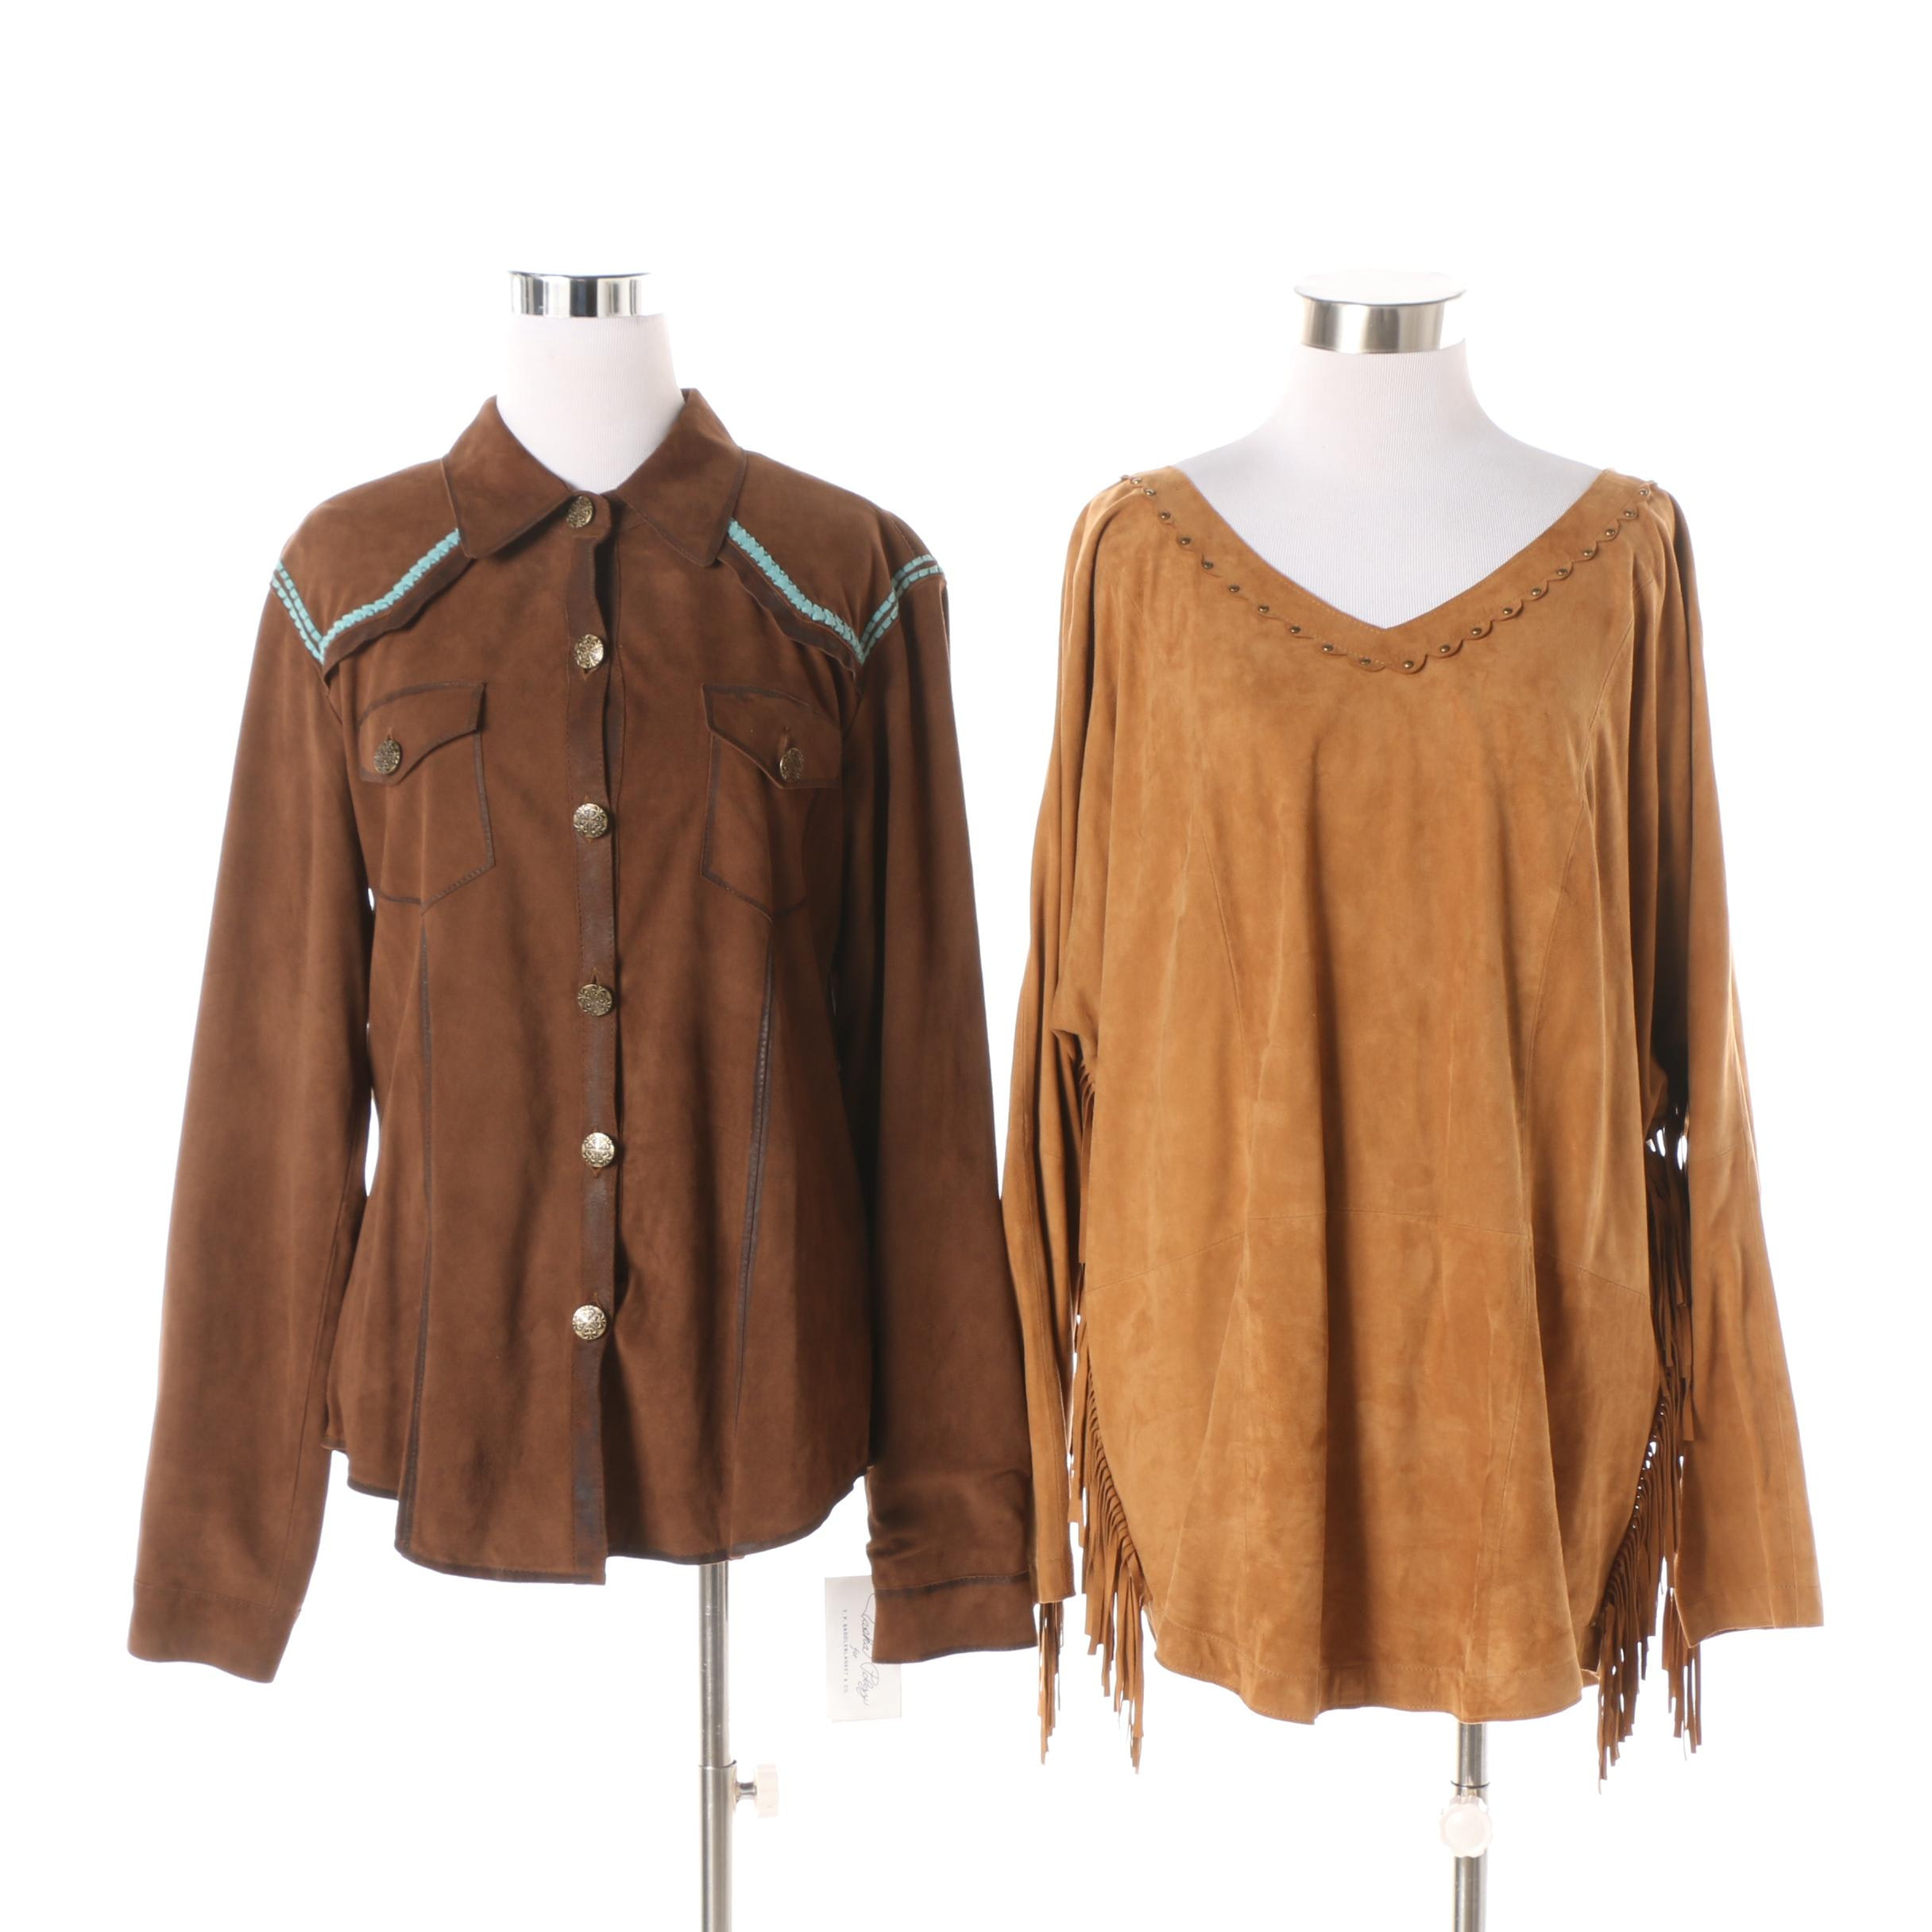 Women's Tasha Polizzi Collection Brown Suede Shirt and Tan Suede Tunic